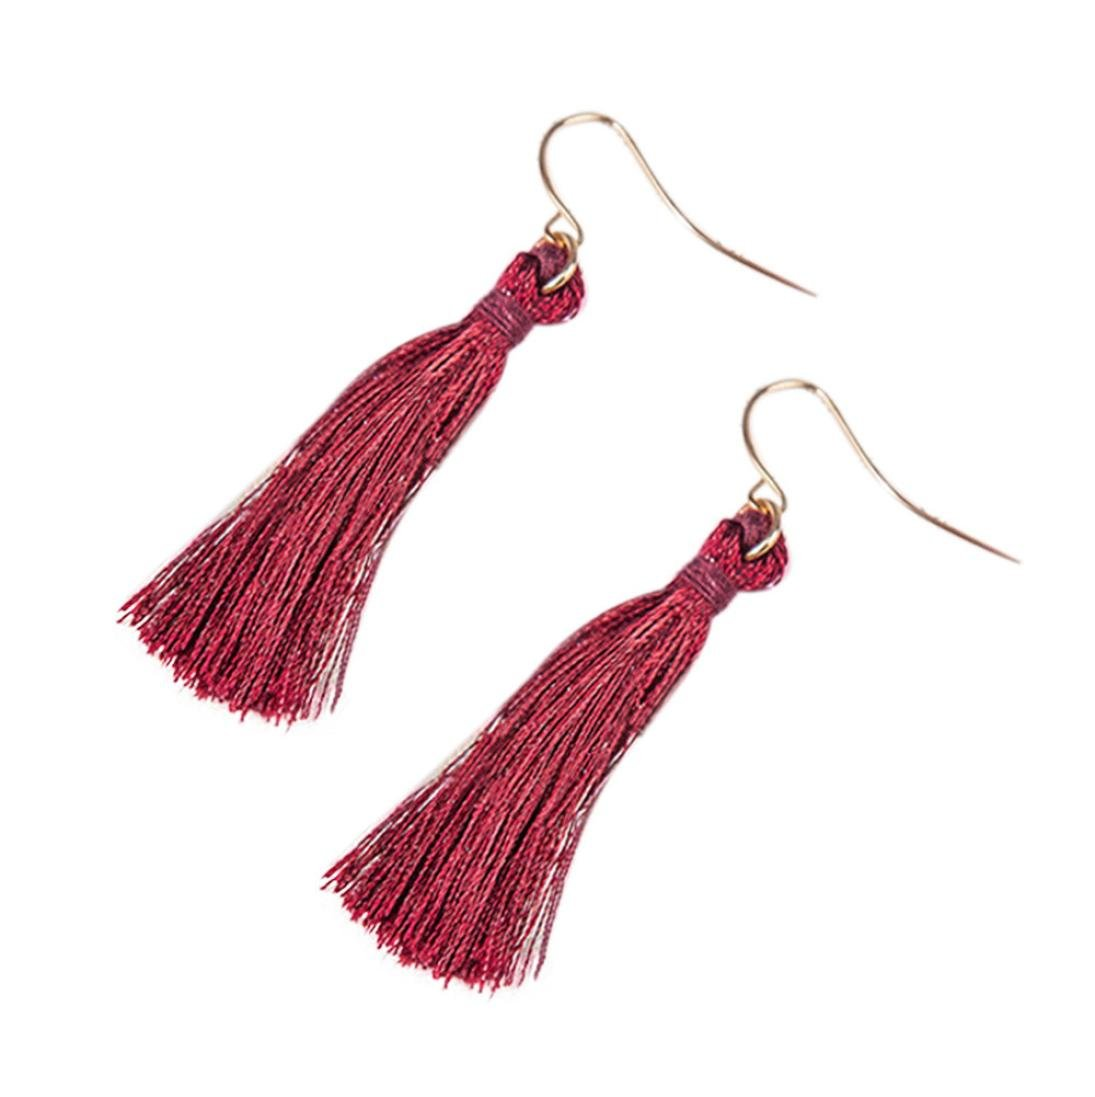 Minshao Bohemian Earrings Women Long Tassel Fringe Dangle Earrings (Navy)